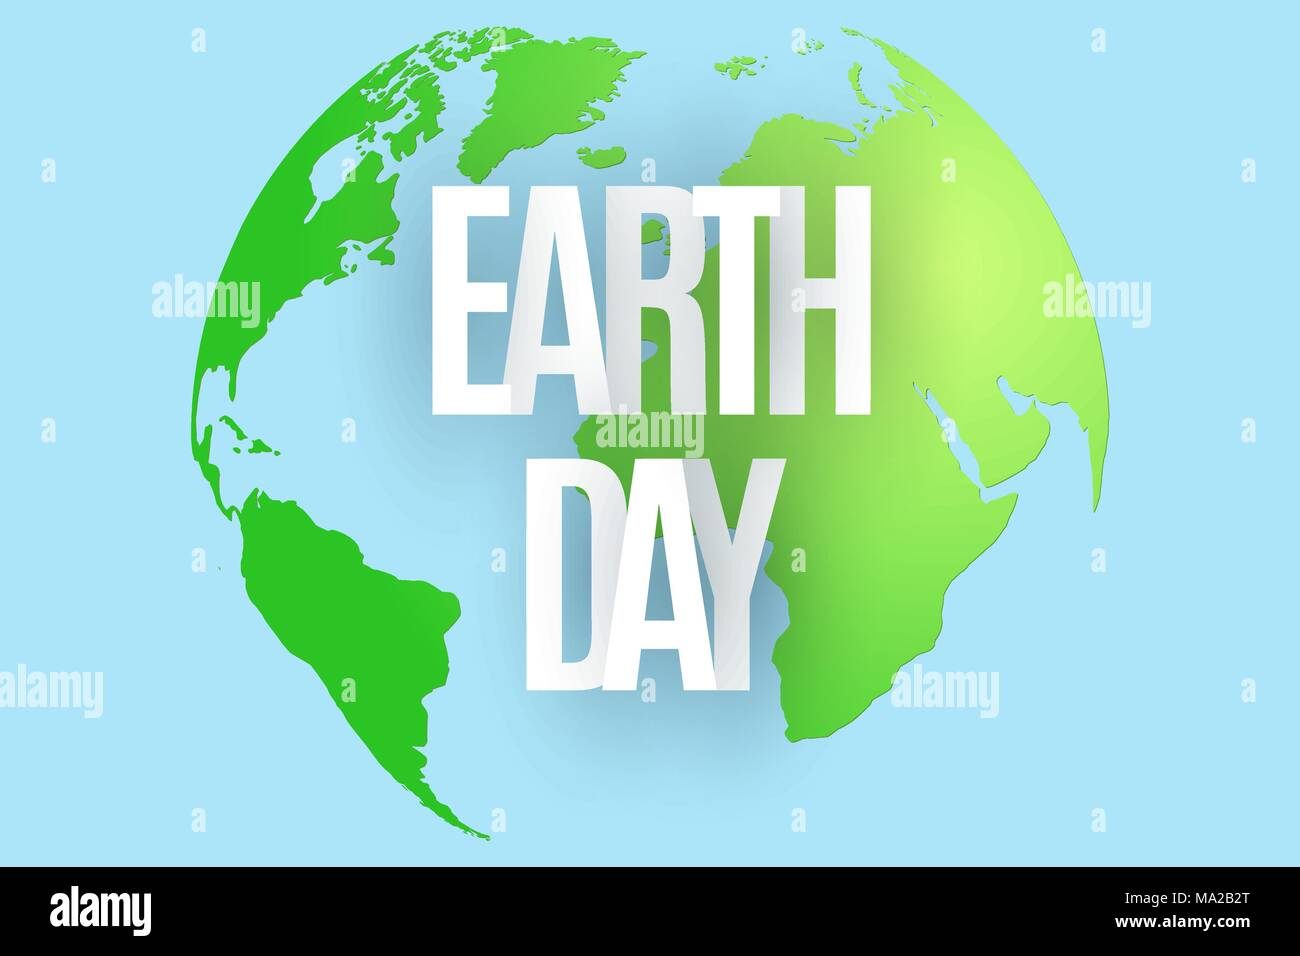 Happy earth day 22 april abstract green planet on blue background happy earth day 22 april abstract green planet on blue background text from paper letters map of the planet earth ecological holiday vector illu gumiabroncs Images